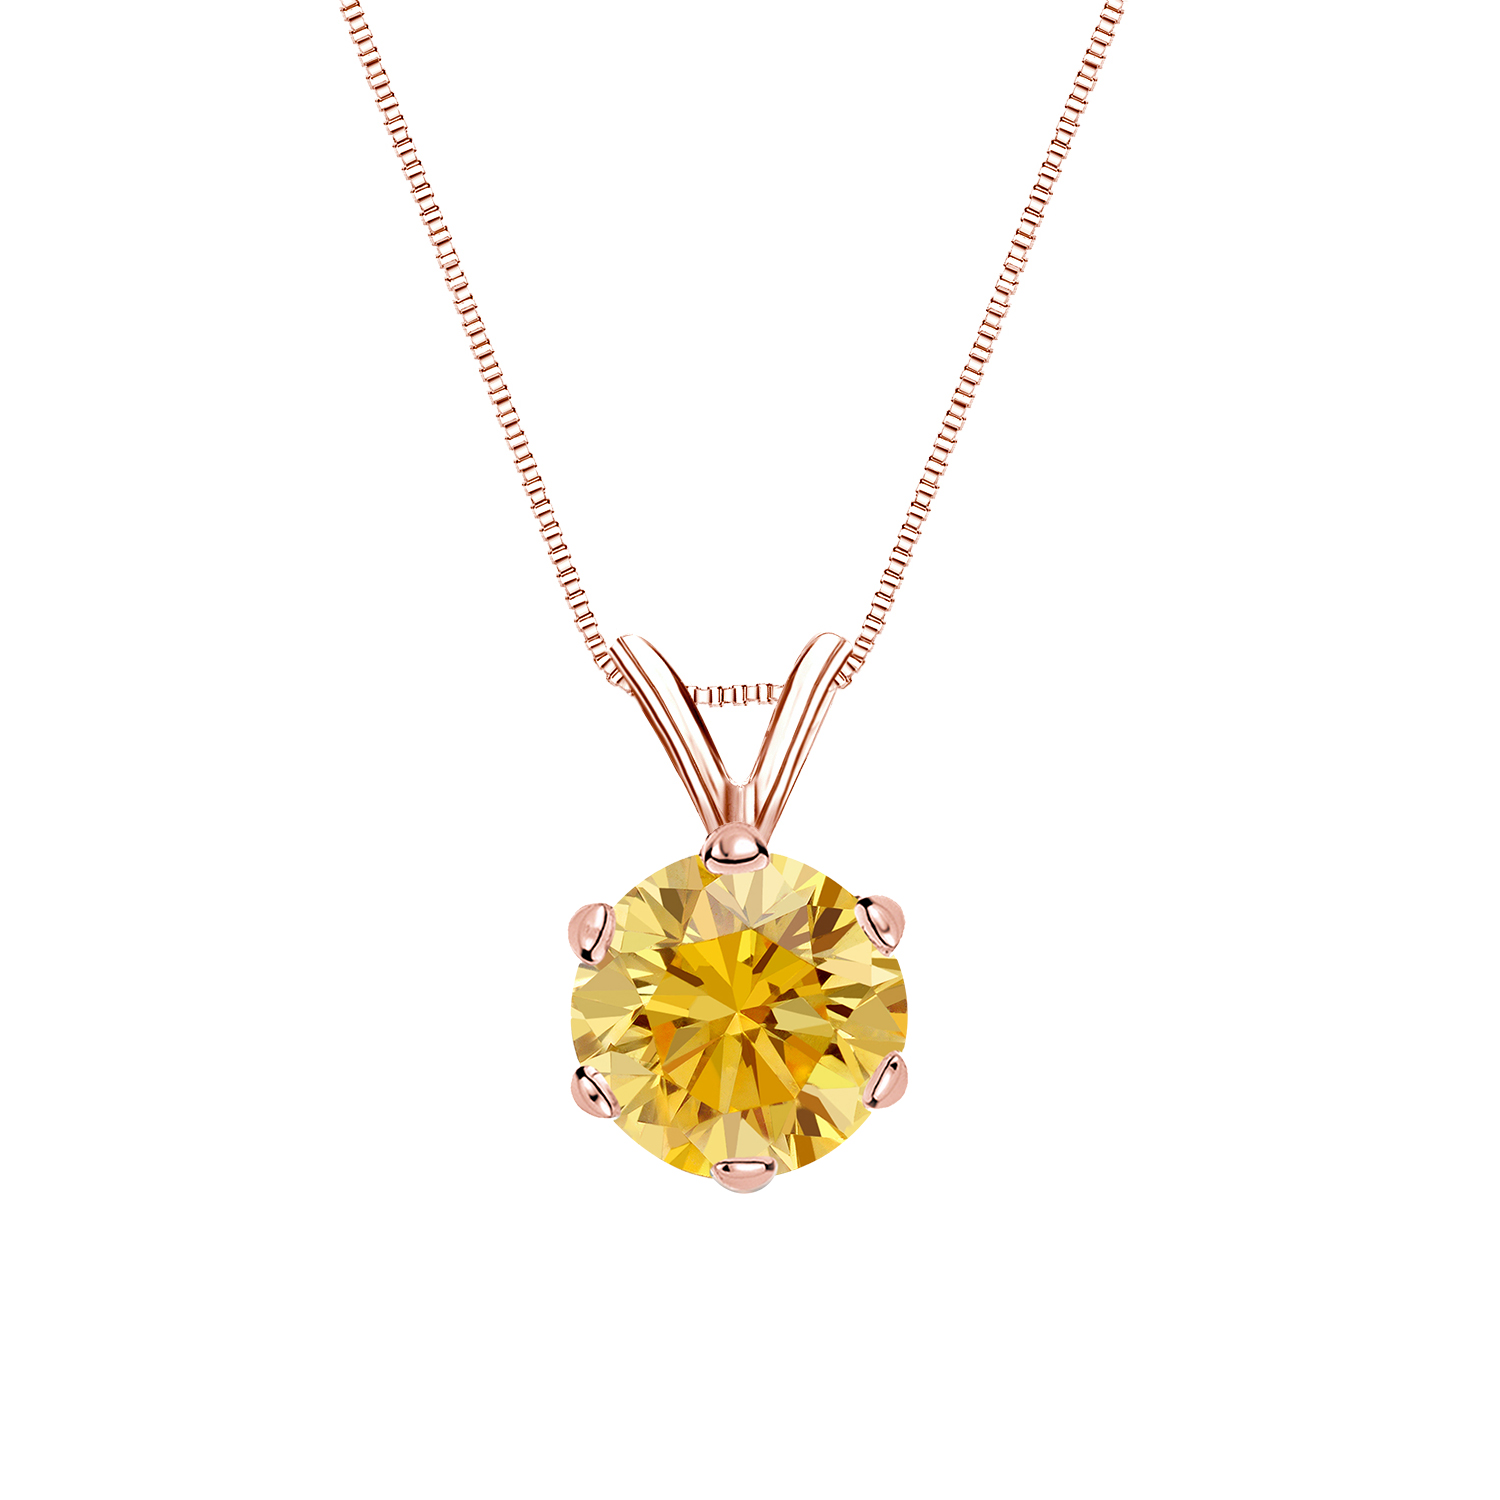 0.25 Carat jaune Solitaire Diamants Pendentif Or rose 14K